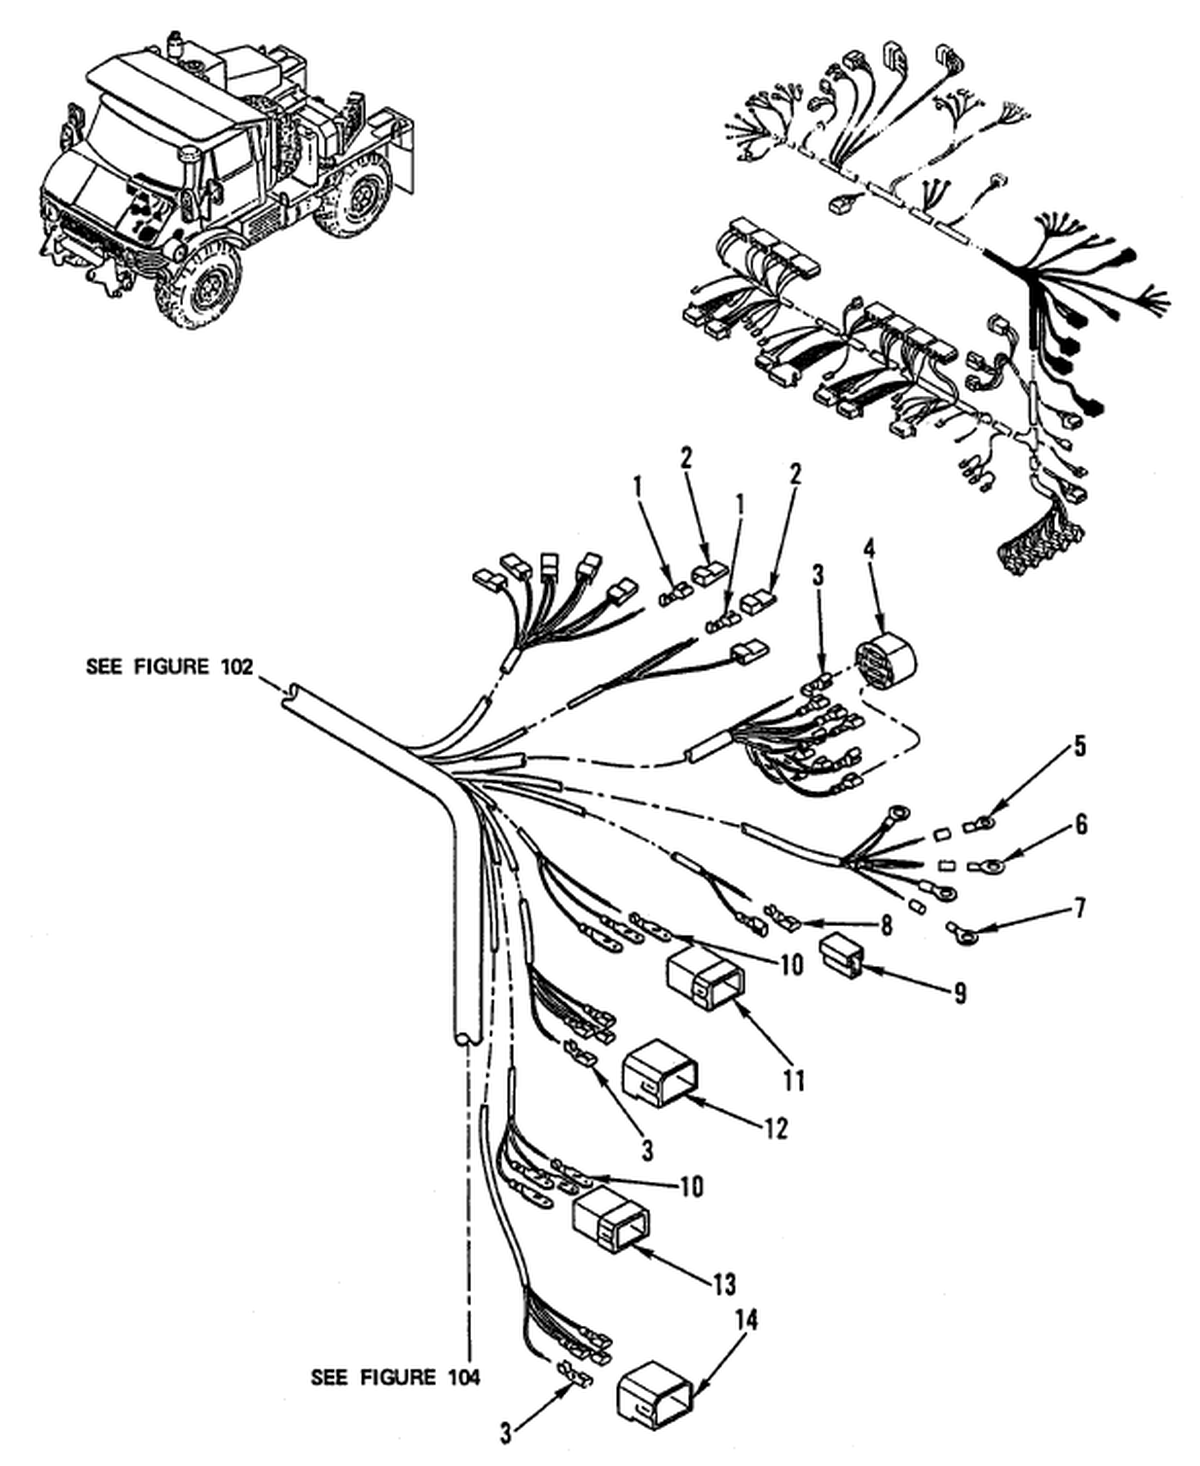 0104 00-2 Figure 103. Hull or Chassis Wiring Harness